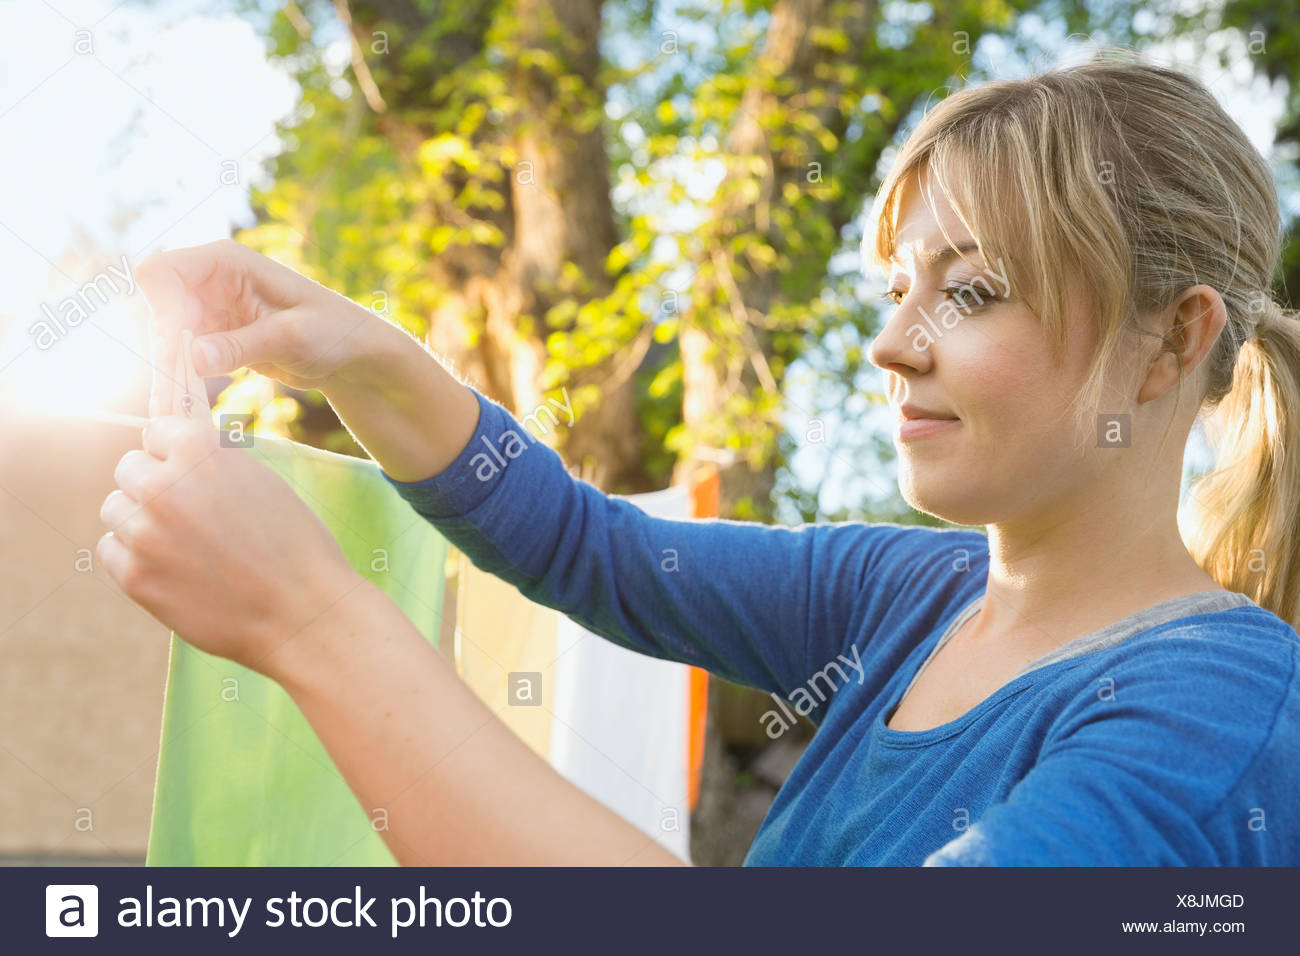 Woman hanging clothing on clothesline in backyard - Stock Image